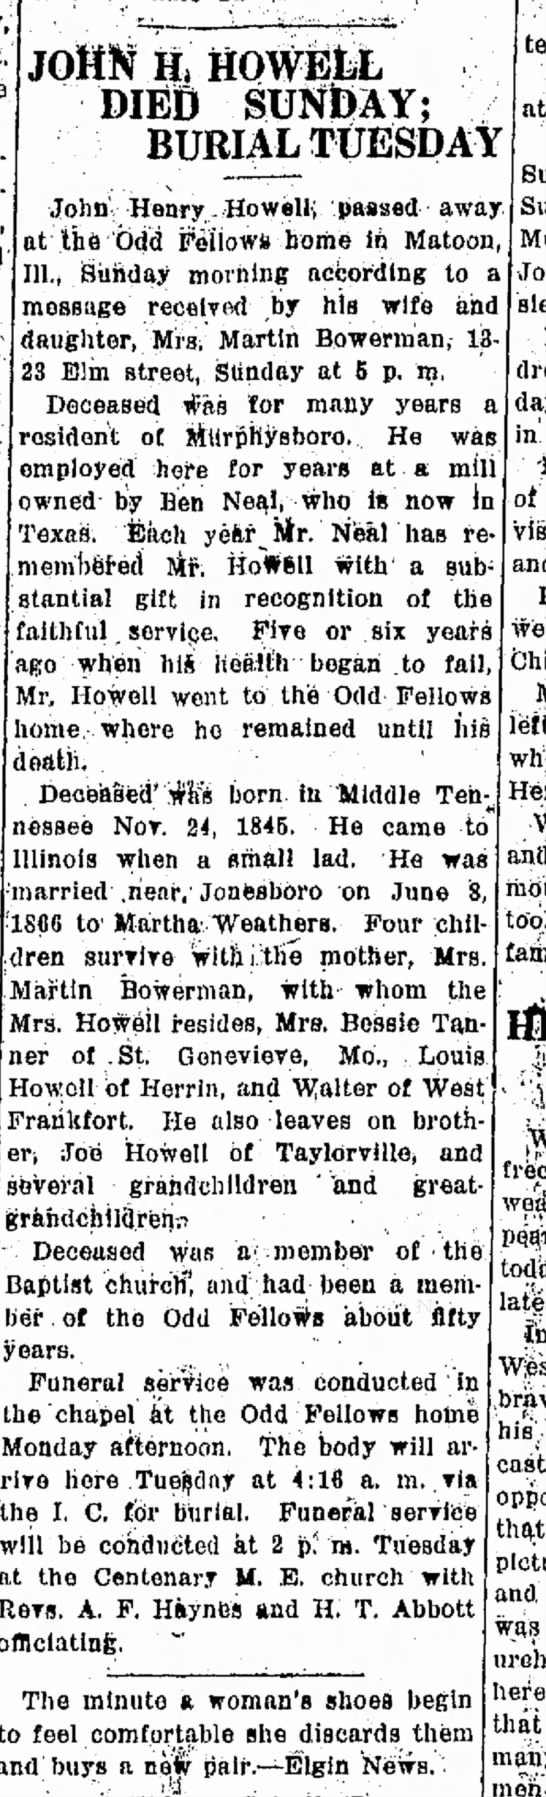 Ben Neal - 2 June 1924Daily Independenet Mboro - JOHN H 4 HQWEfeL DIED SUNDAY; BURIAL TUESDAY at...